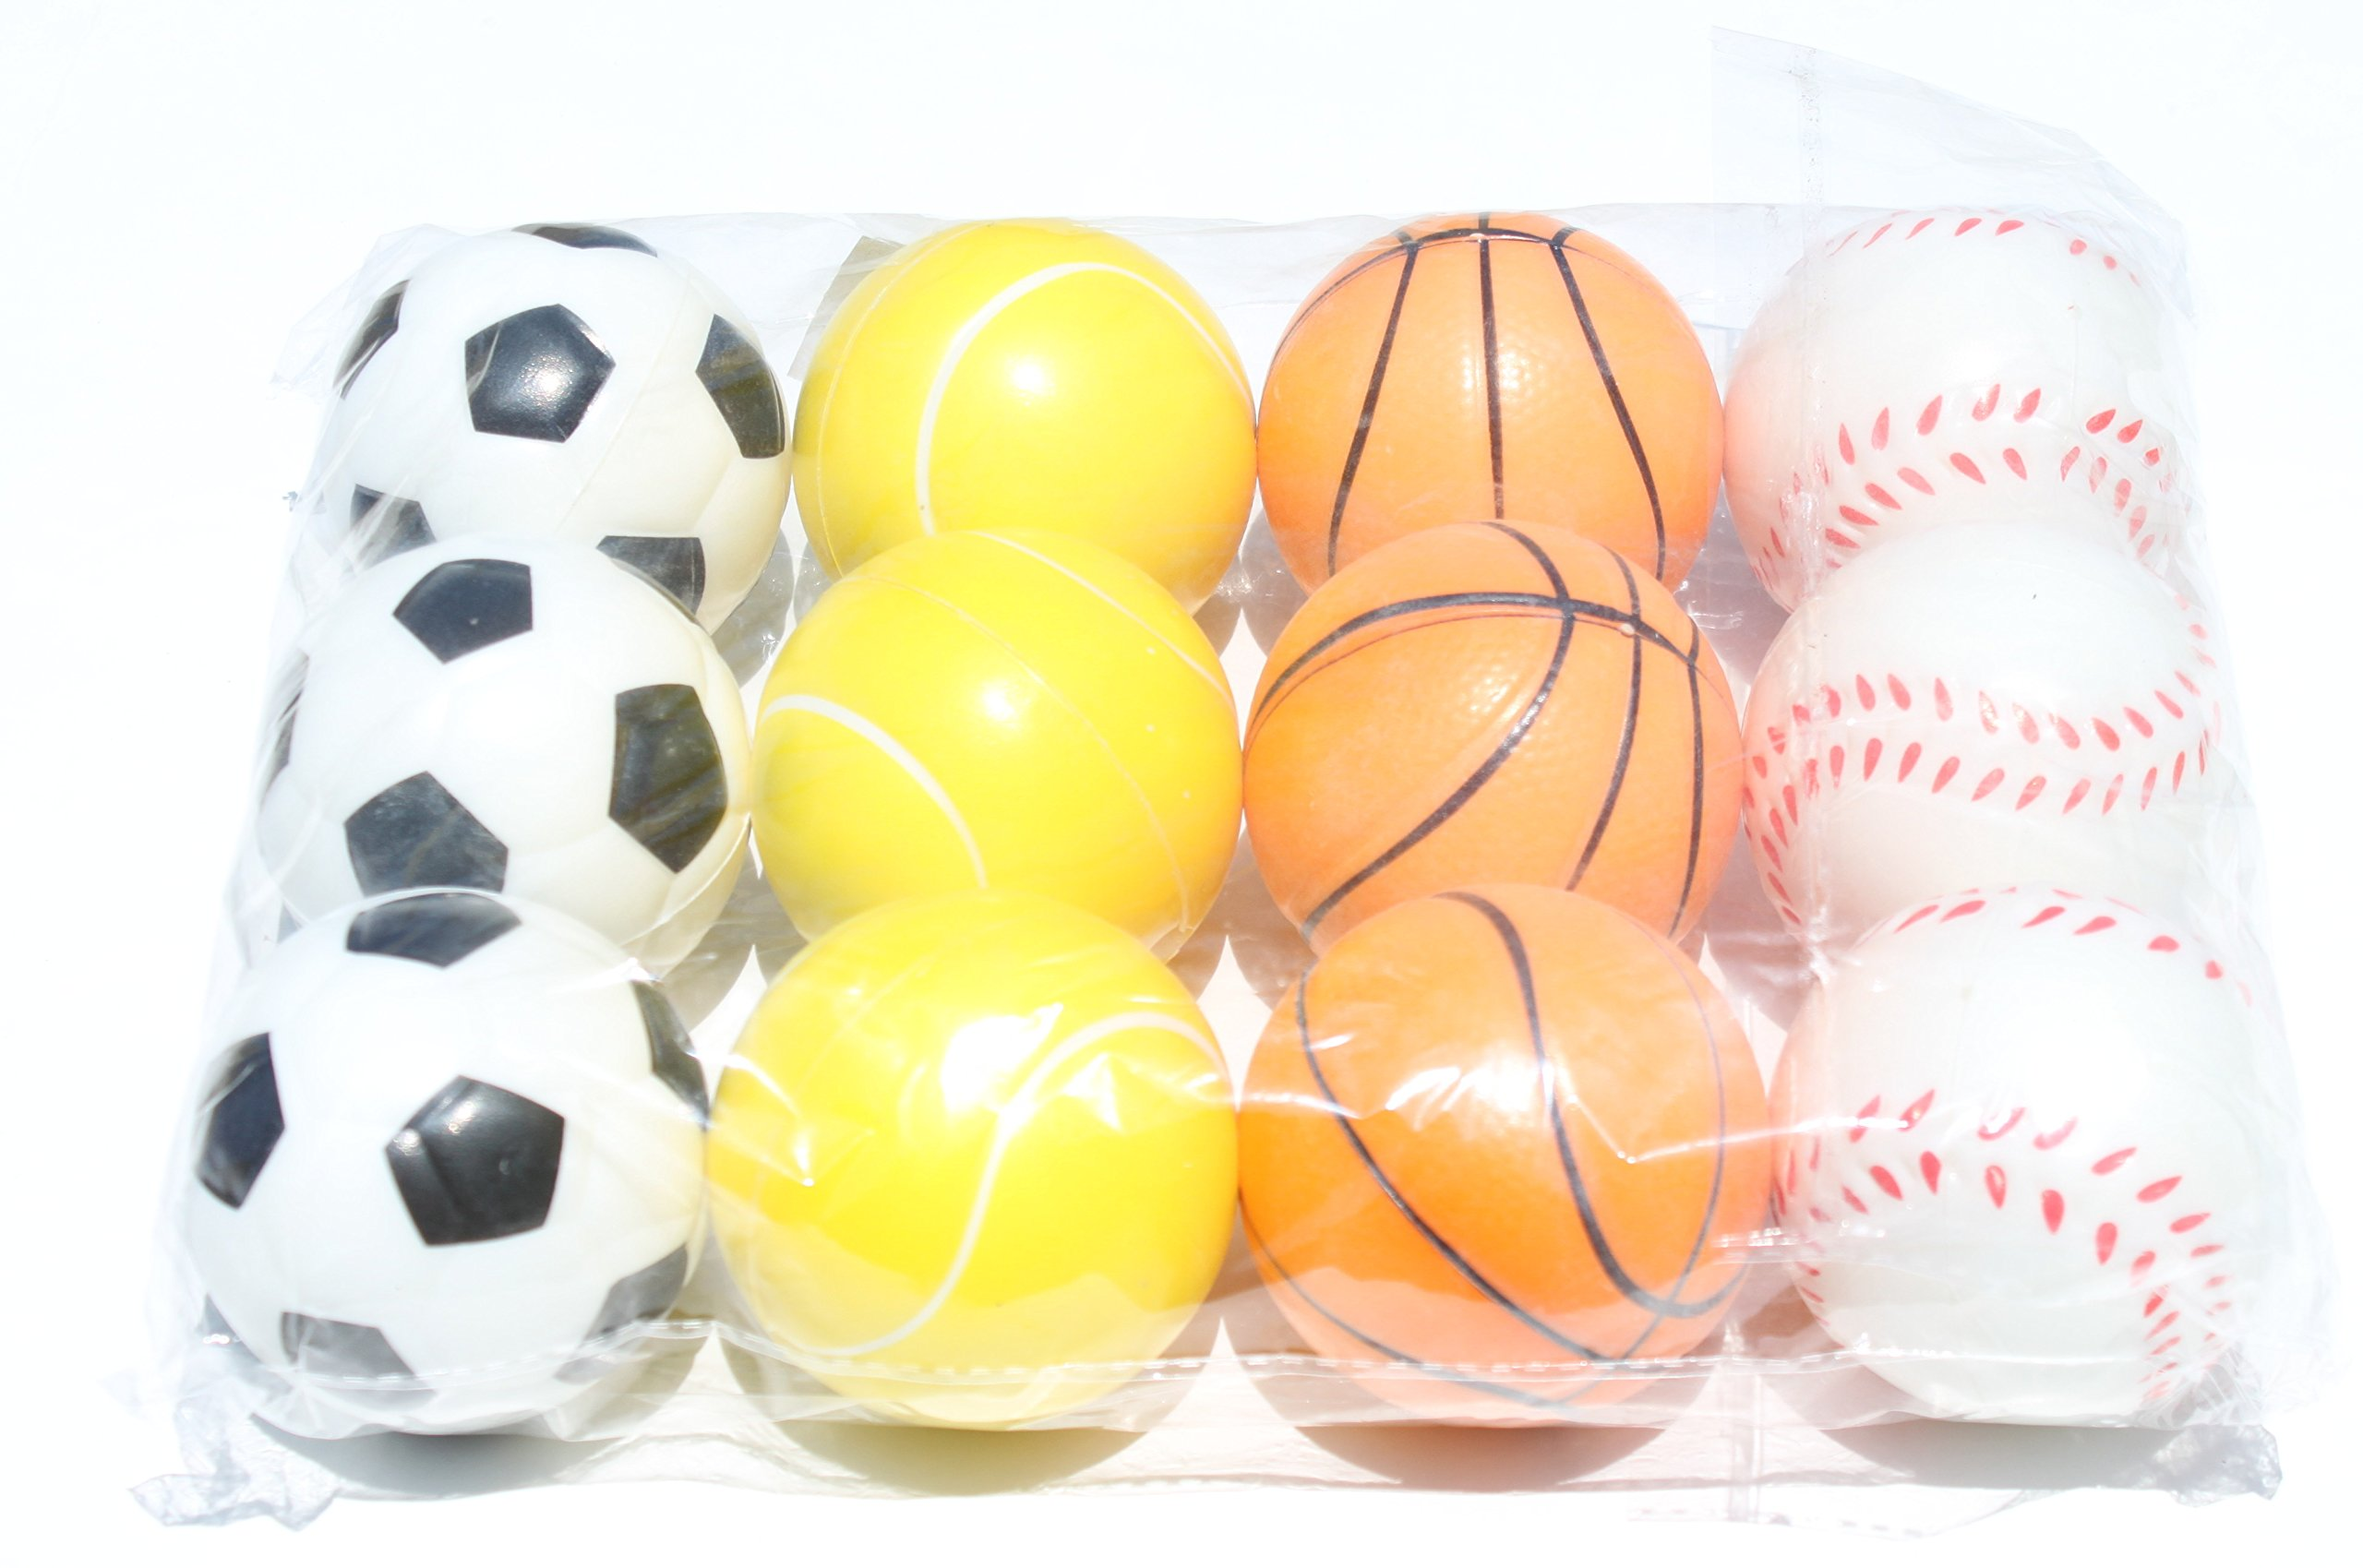 12 Sports Squeeze Ball (Soccer Basket Tennis Base Ball)- Stress Relief Finger Therapy After Hand Exercise Grip Ball